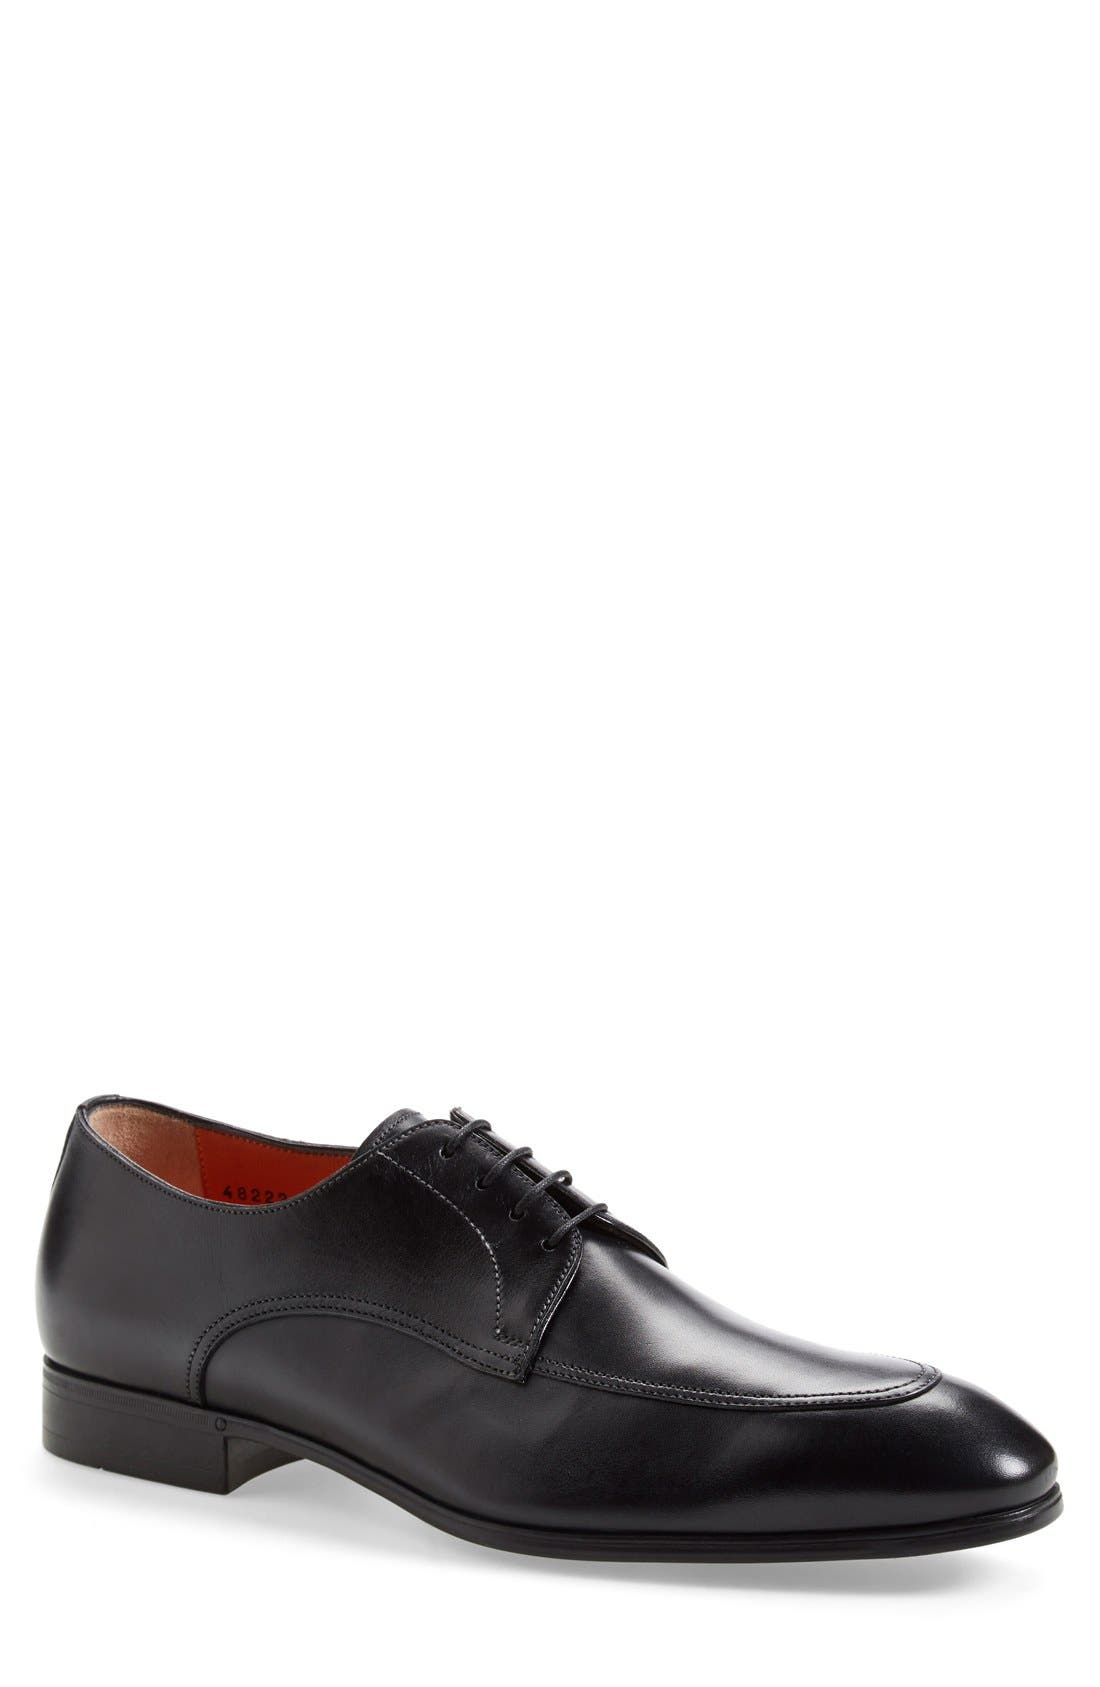 'Atwood' Apron Toe Derby,                         Main,                         color,